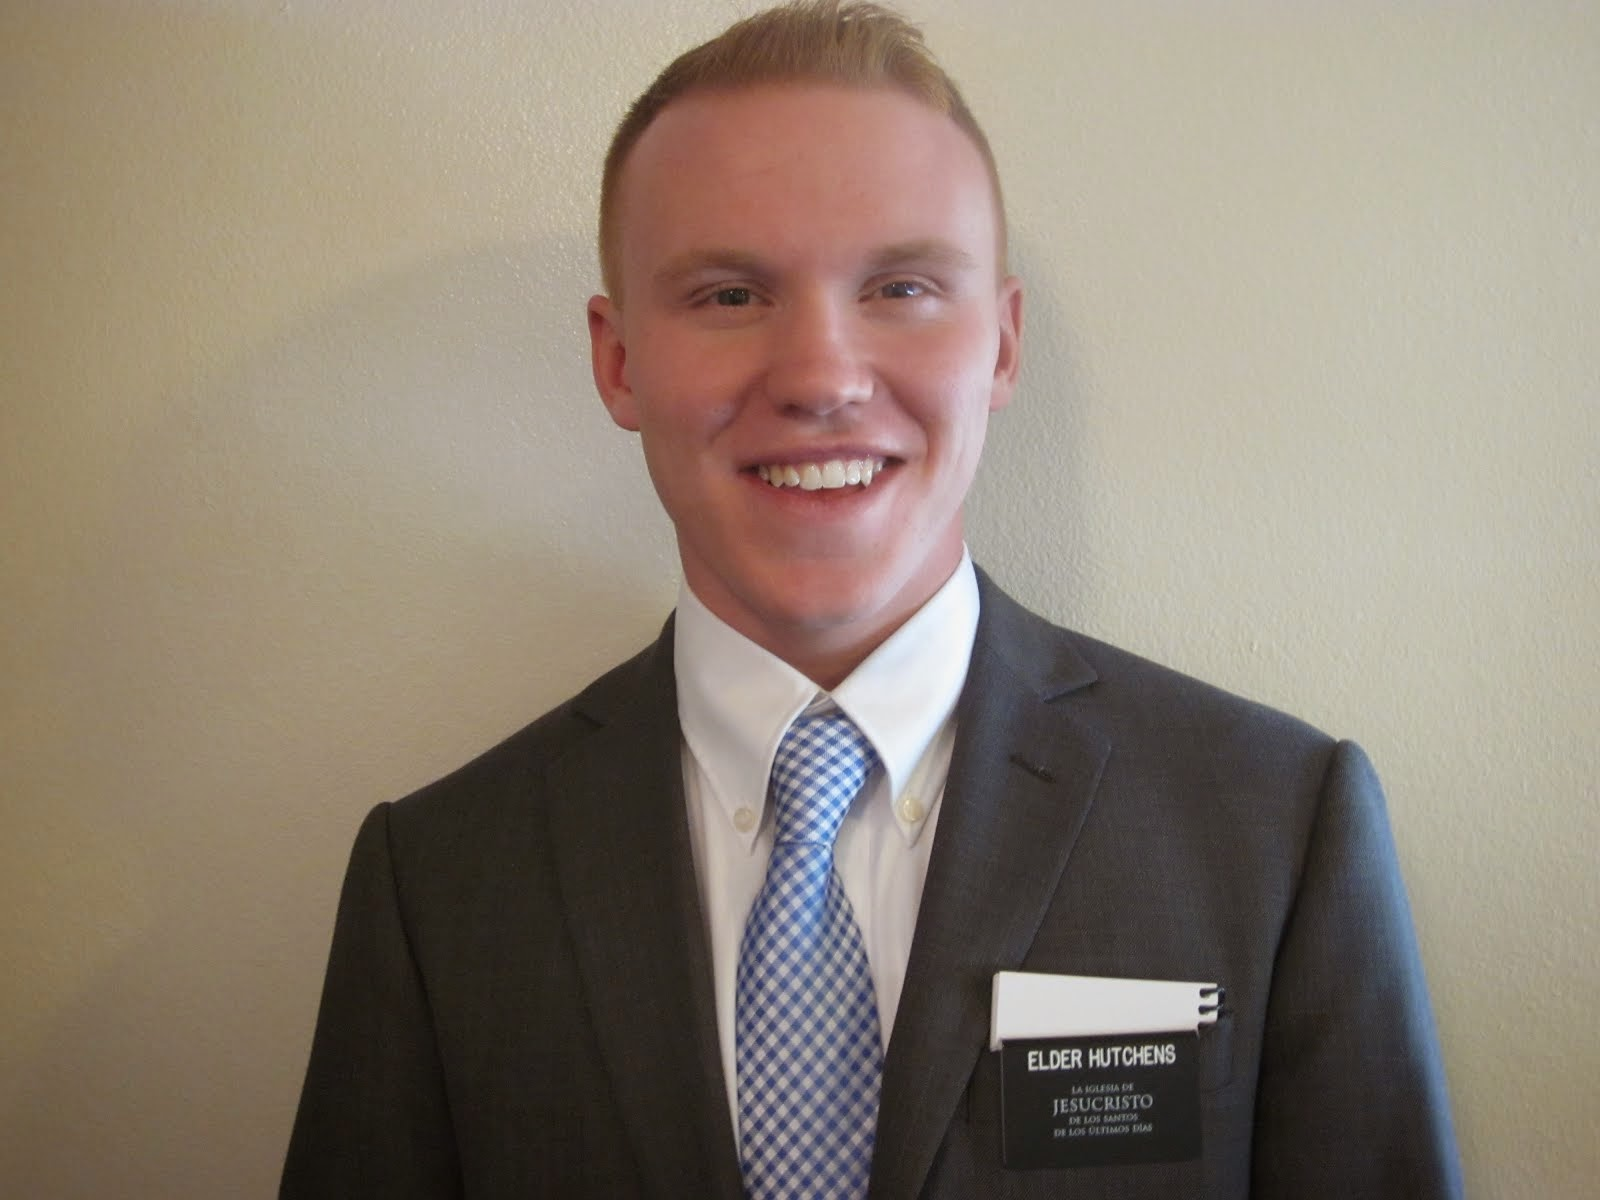 Elder Tanner Paul Hutchens